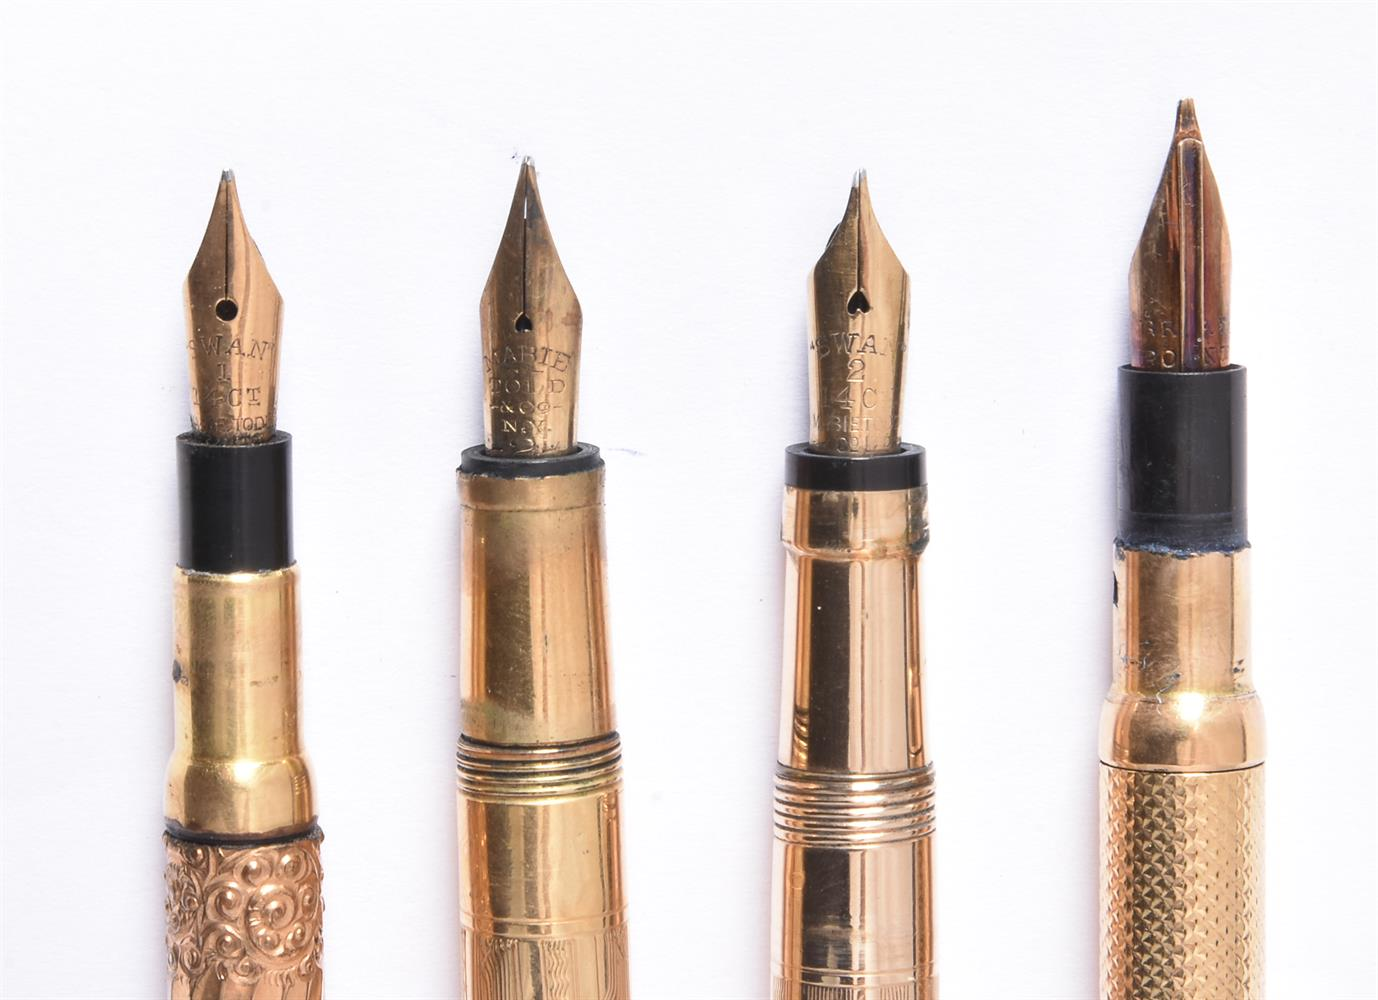 Mabie Todd & Co., Swan, a gilt metal fountain pen - Image 3 of 4